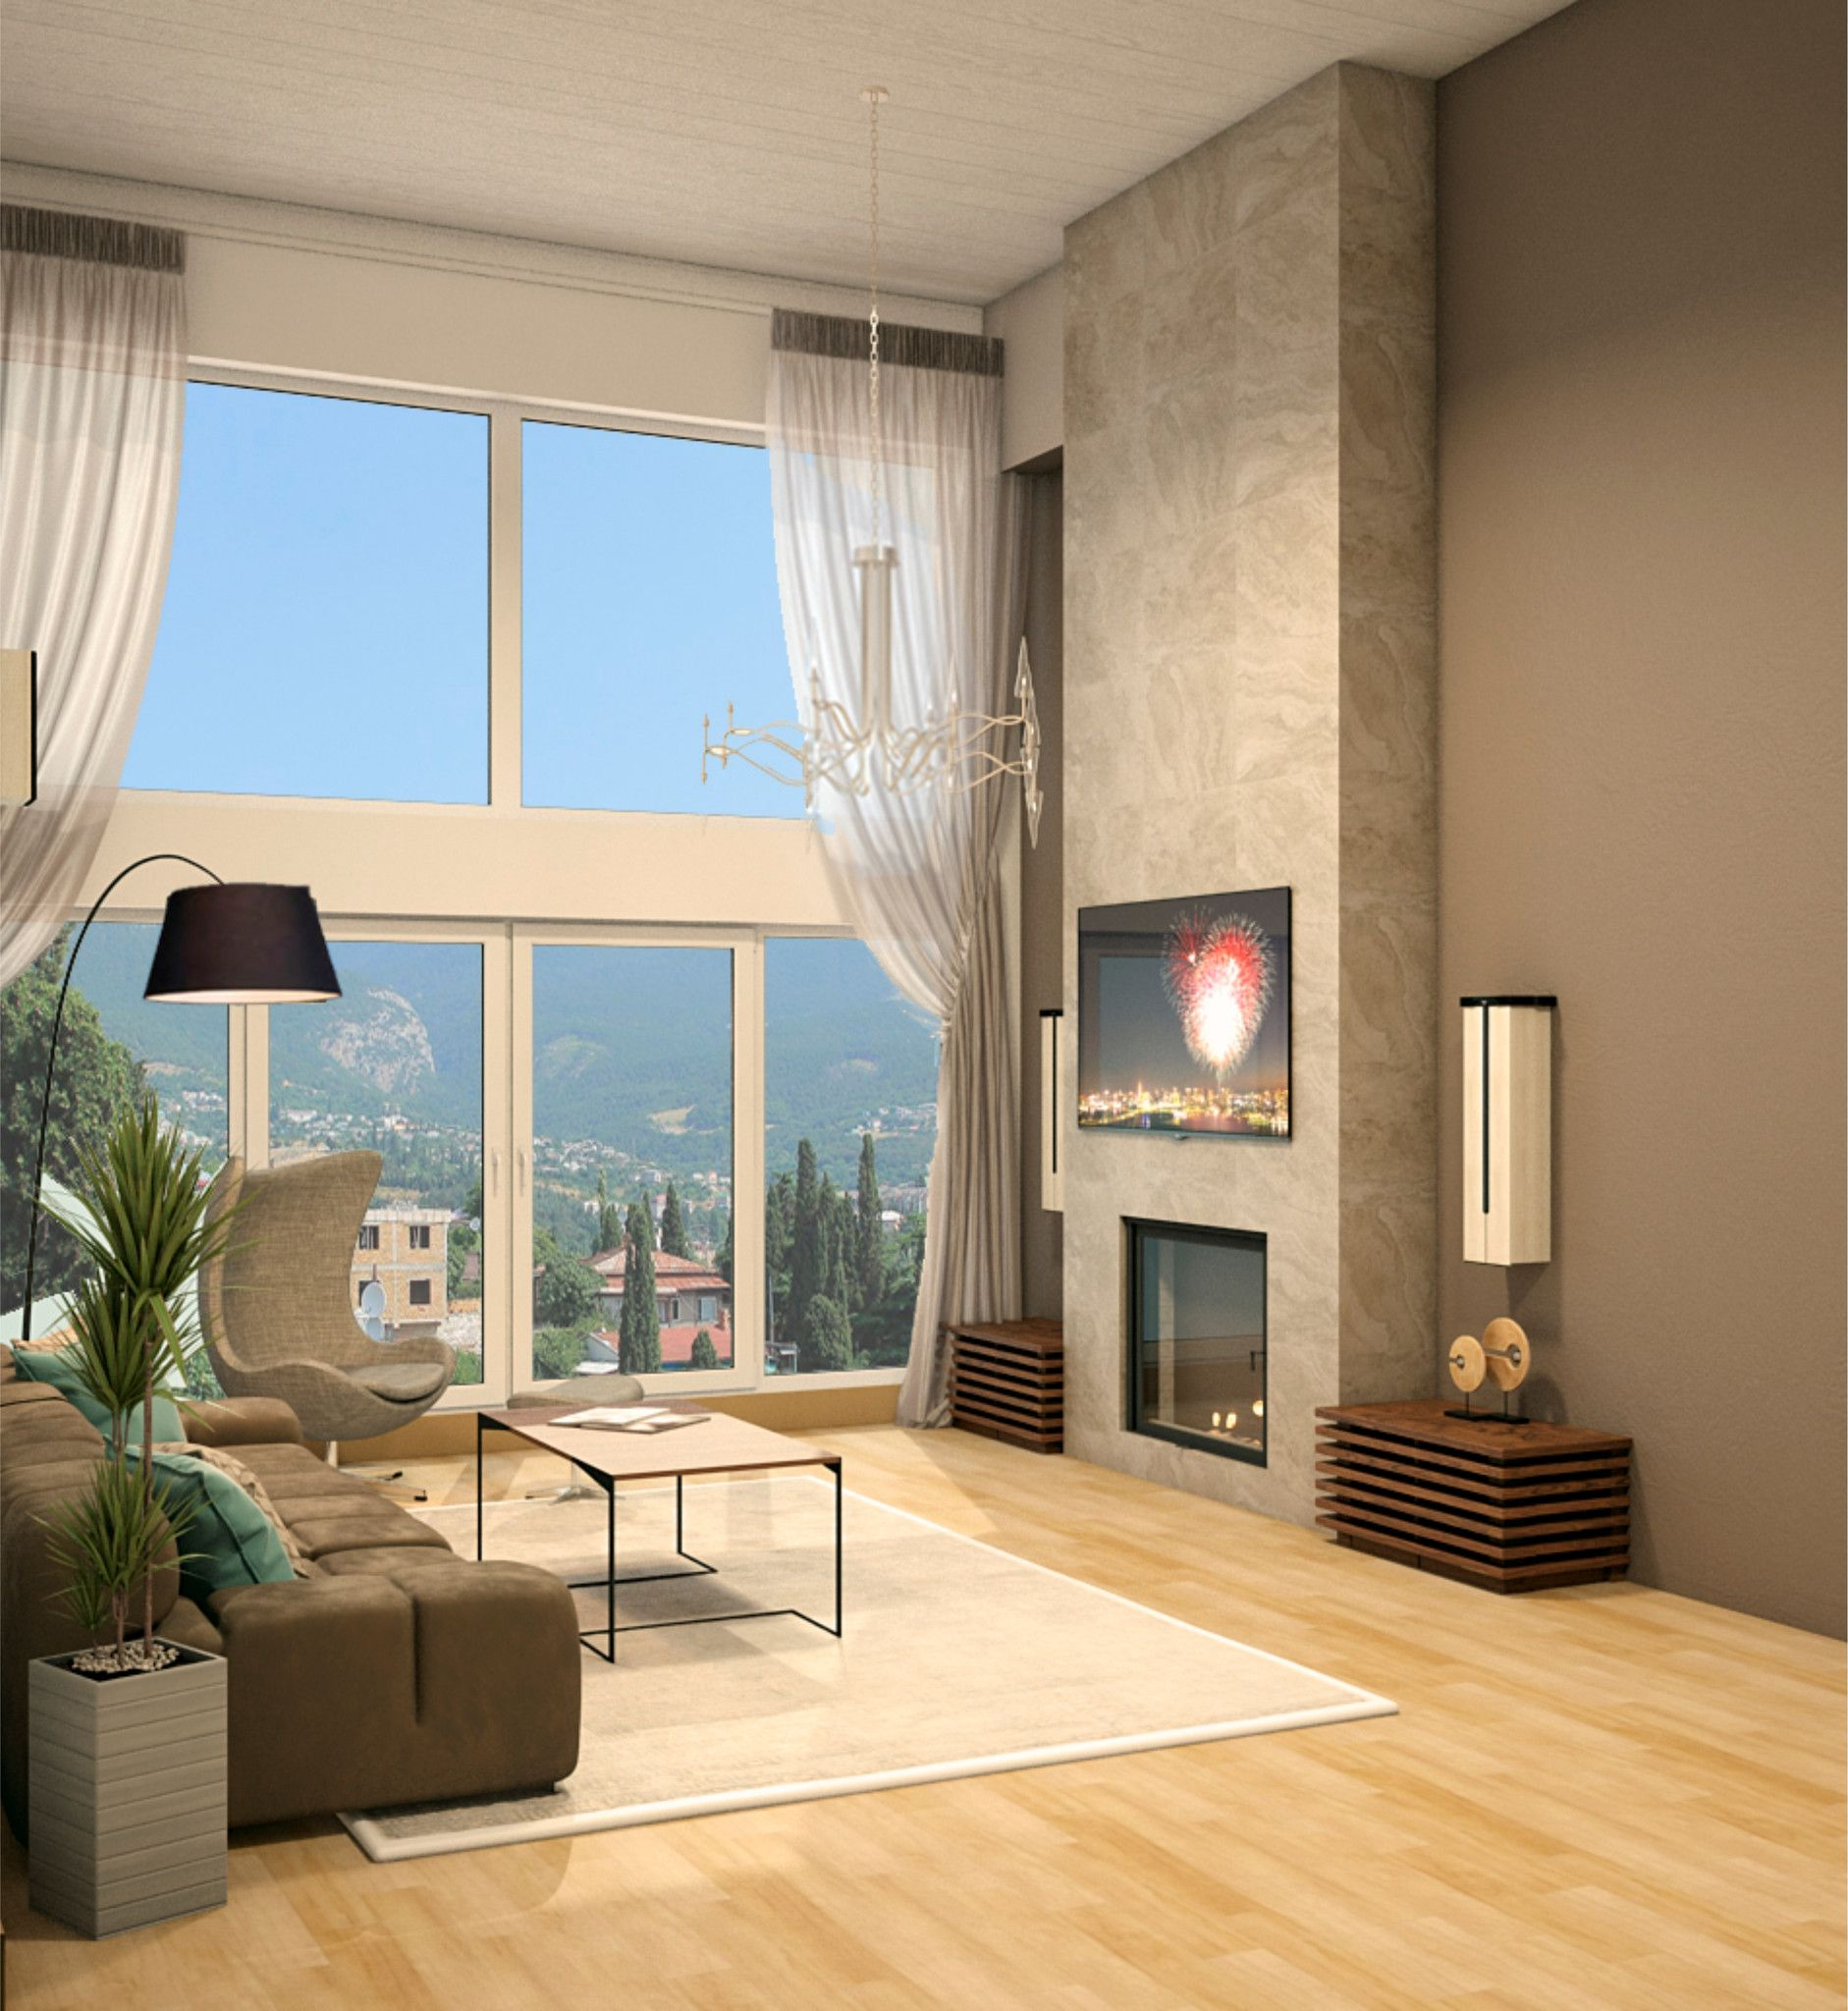 Design A Living Room Online Amazing Thinking Of Shopping Emfurn But Not Sure How Your Room Will Appear Inspiration